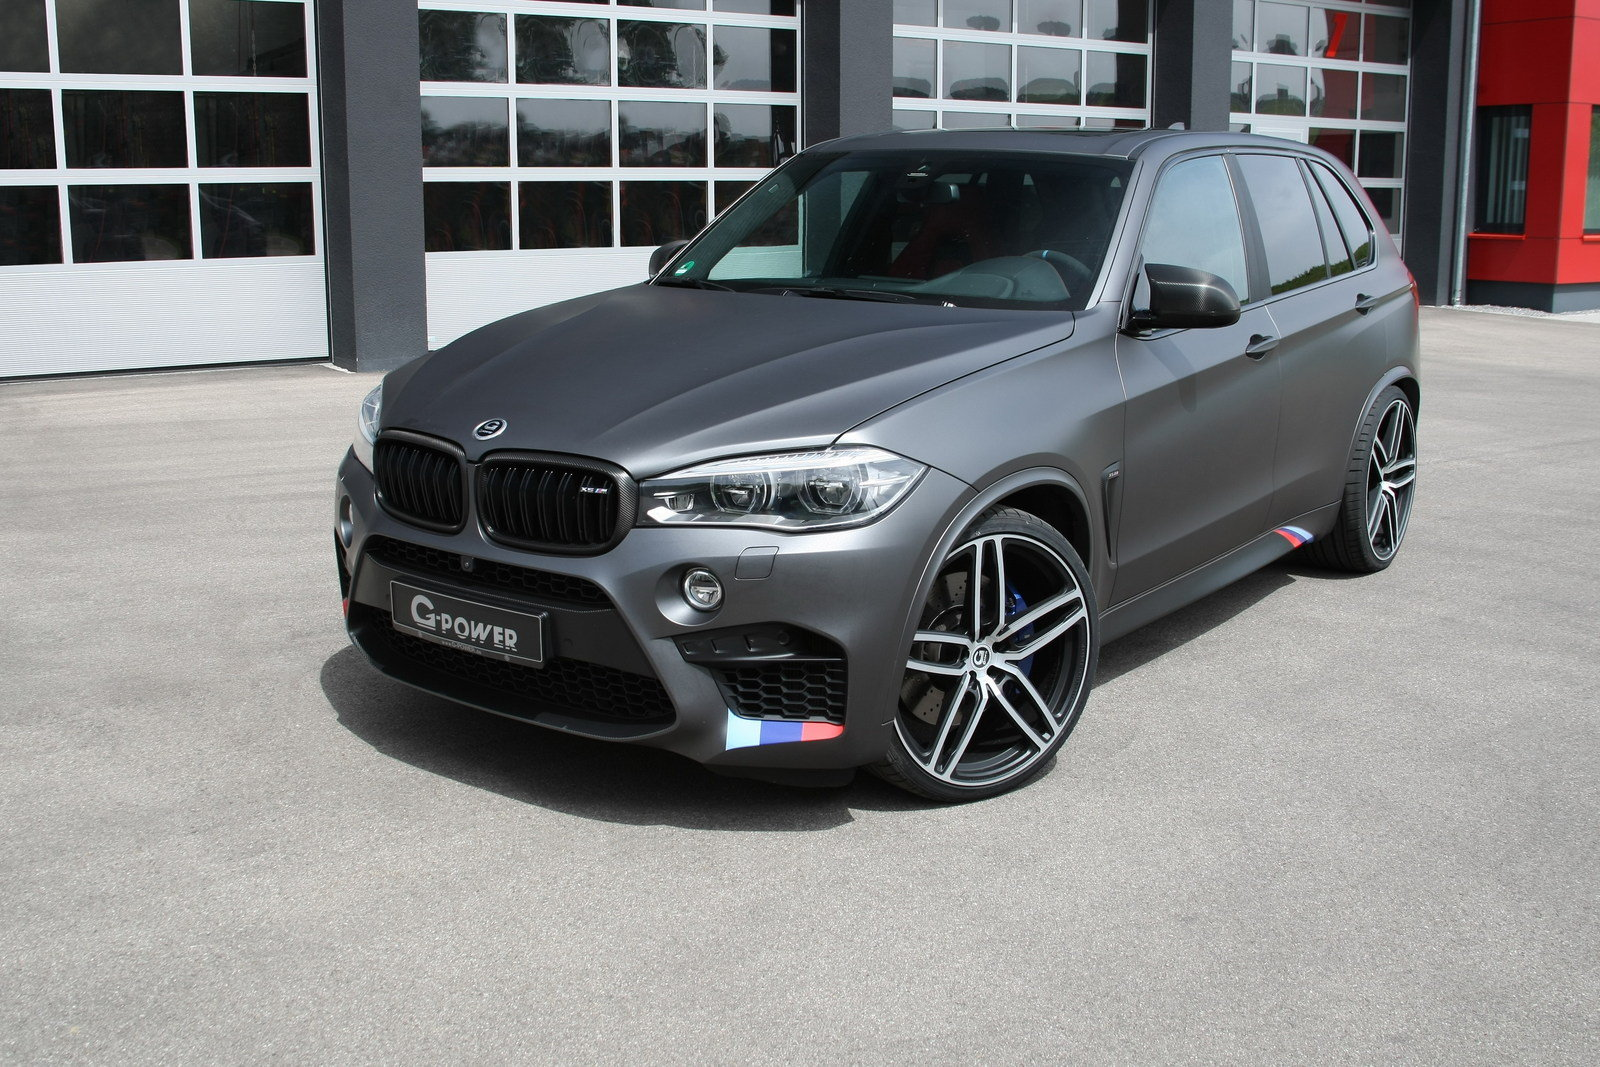 2016 bmw x5 m by g power picture 680632 car review top speed. Black Bedroom Furniture Sets. Home Design Ideas